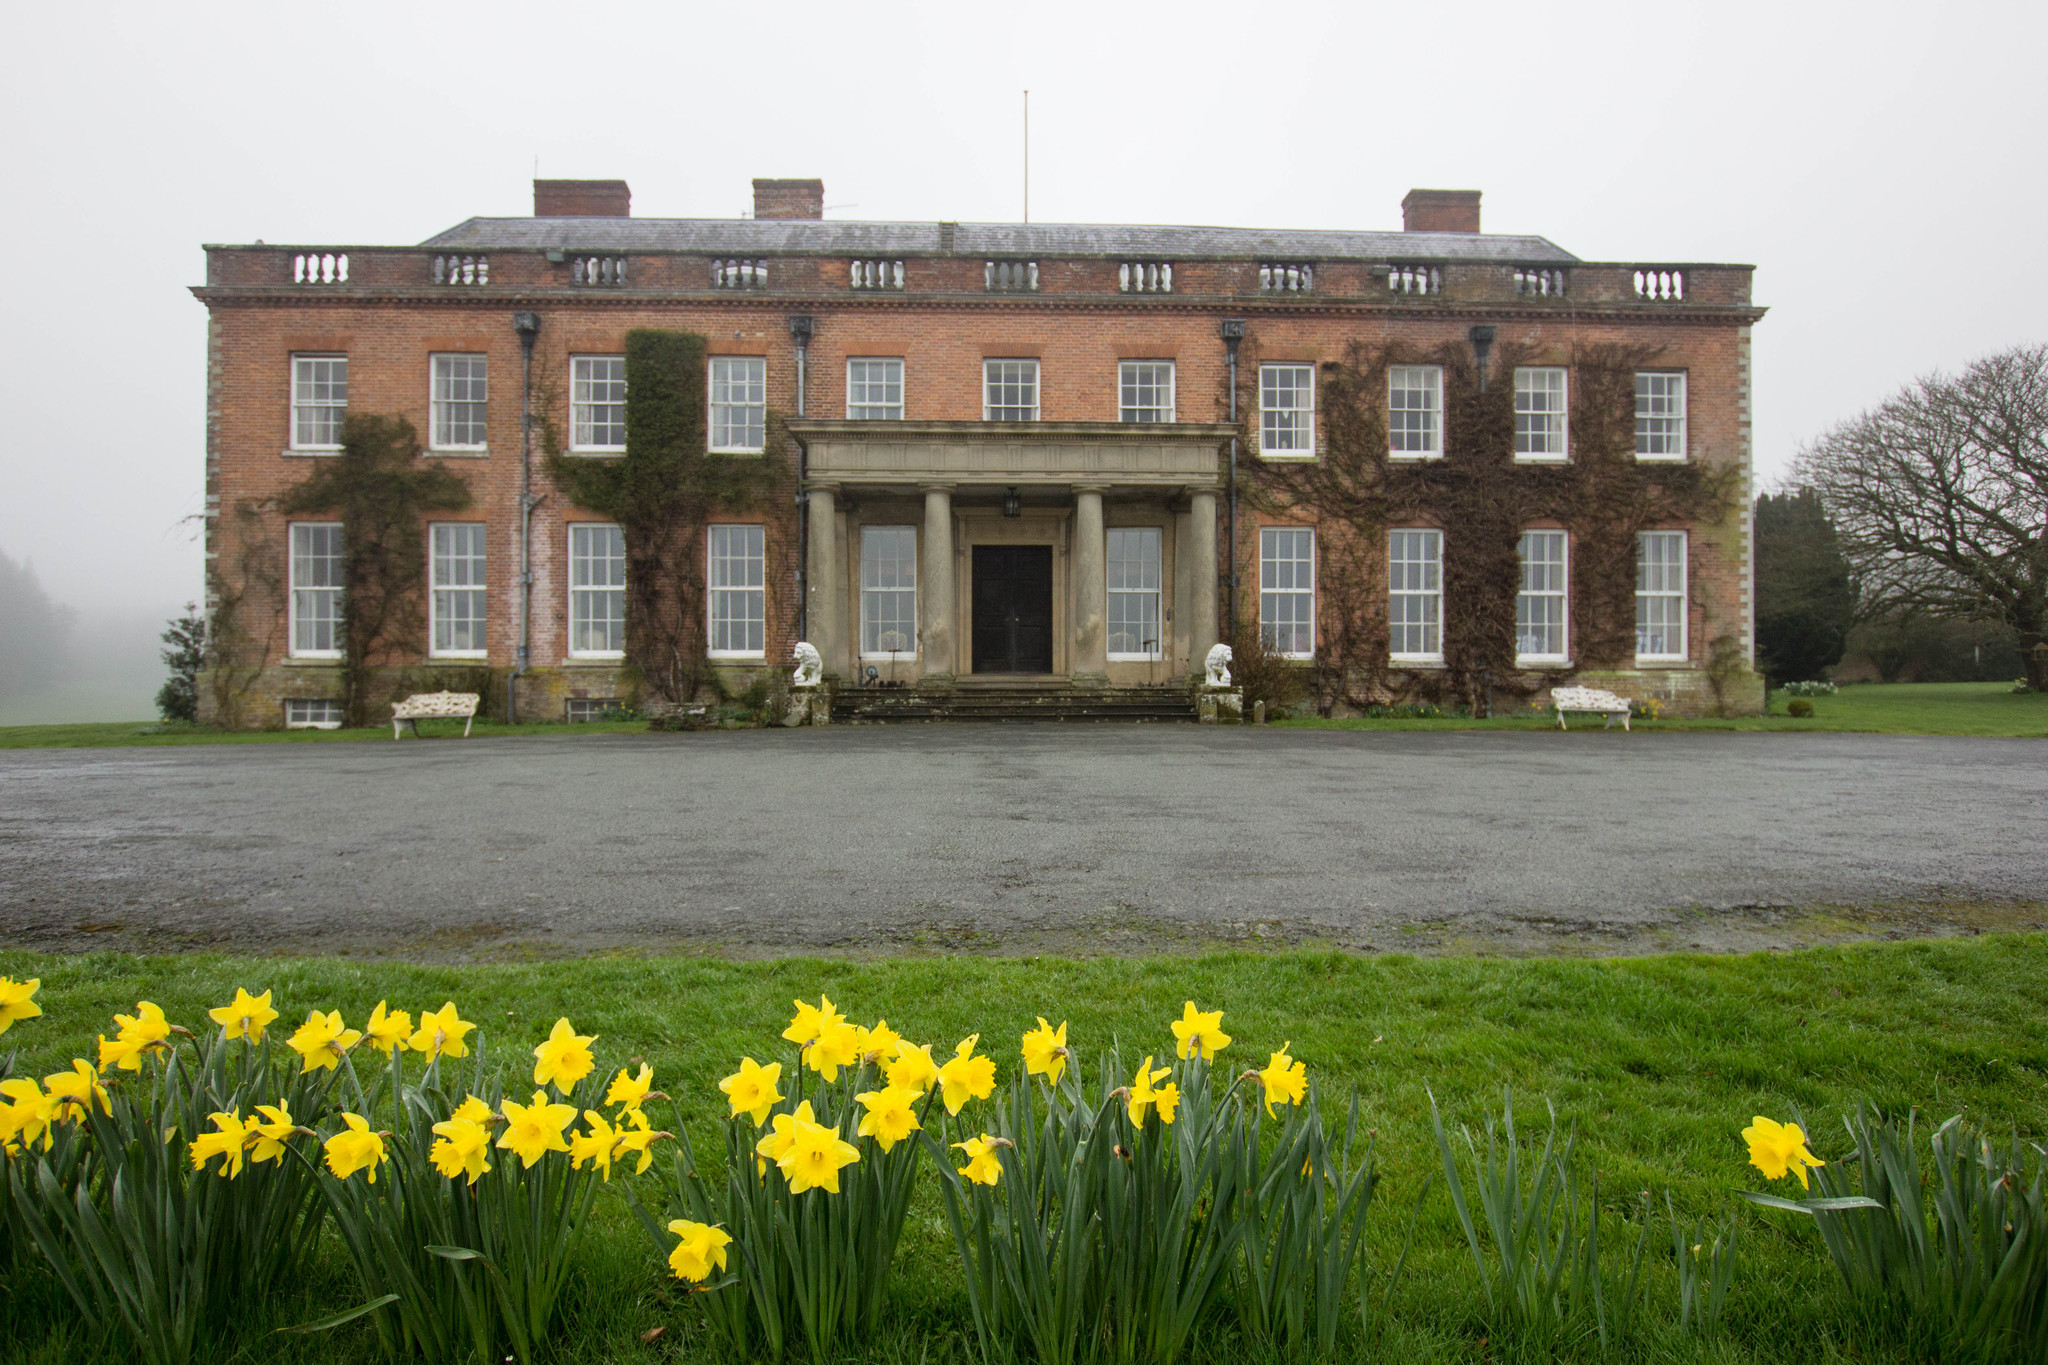 Walcot Hall Exterior with daffodils misty morning